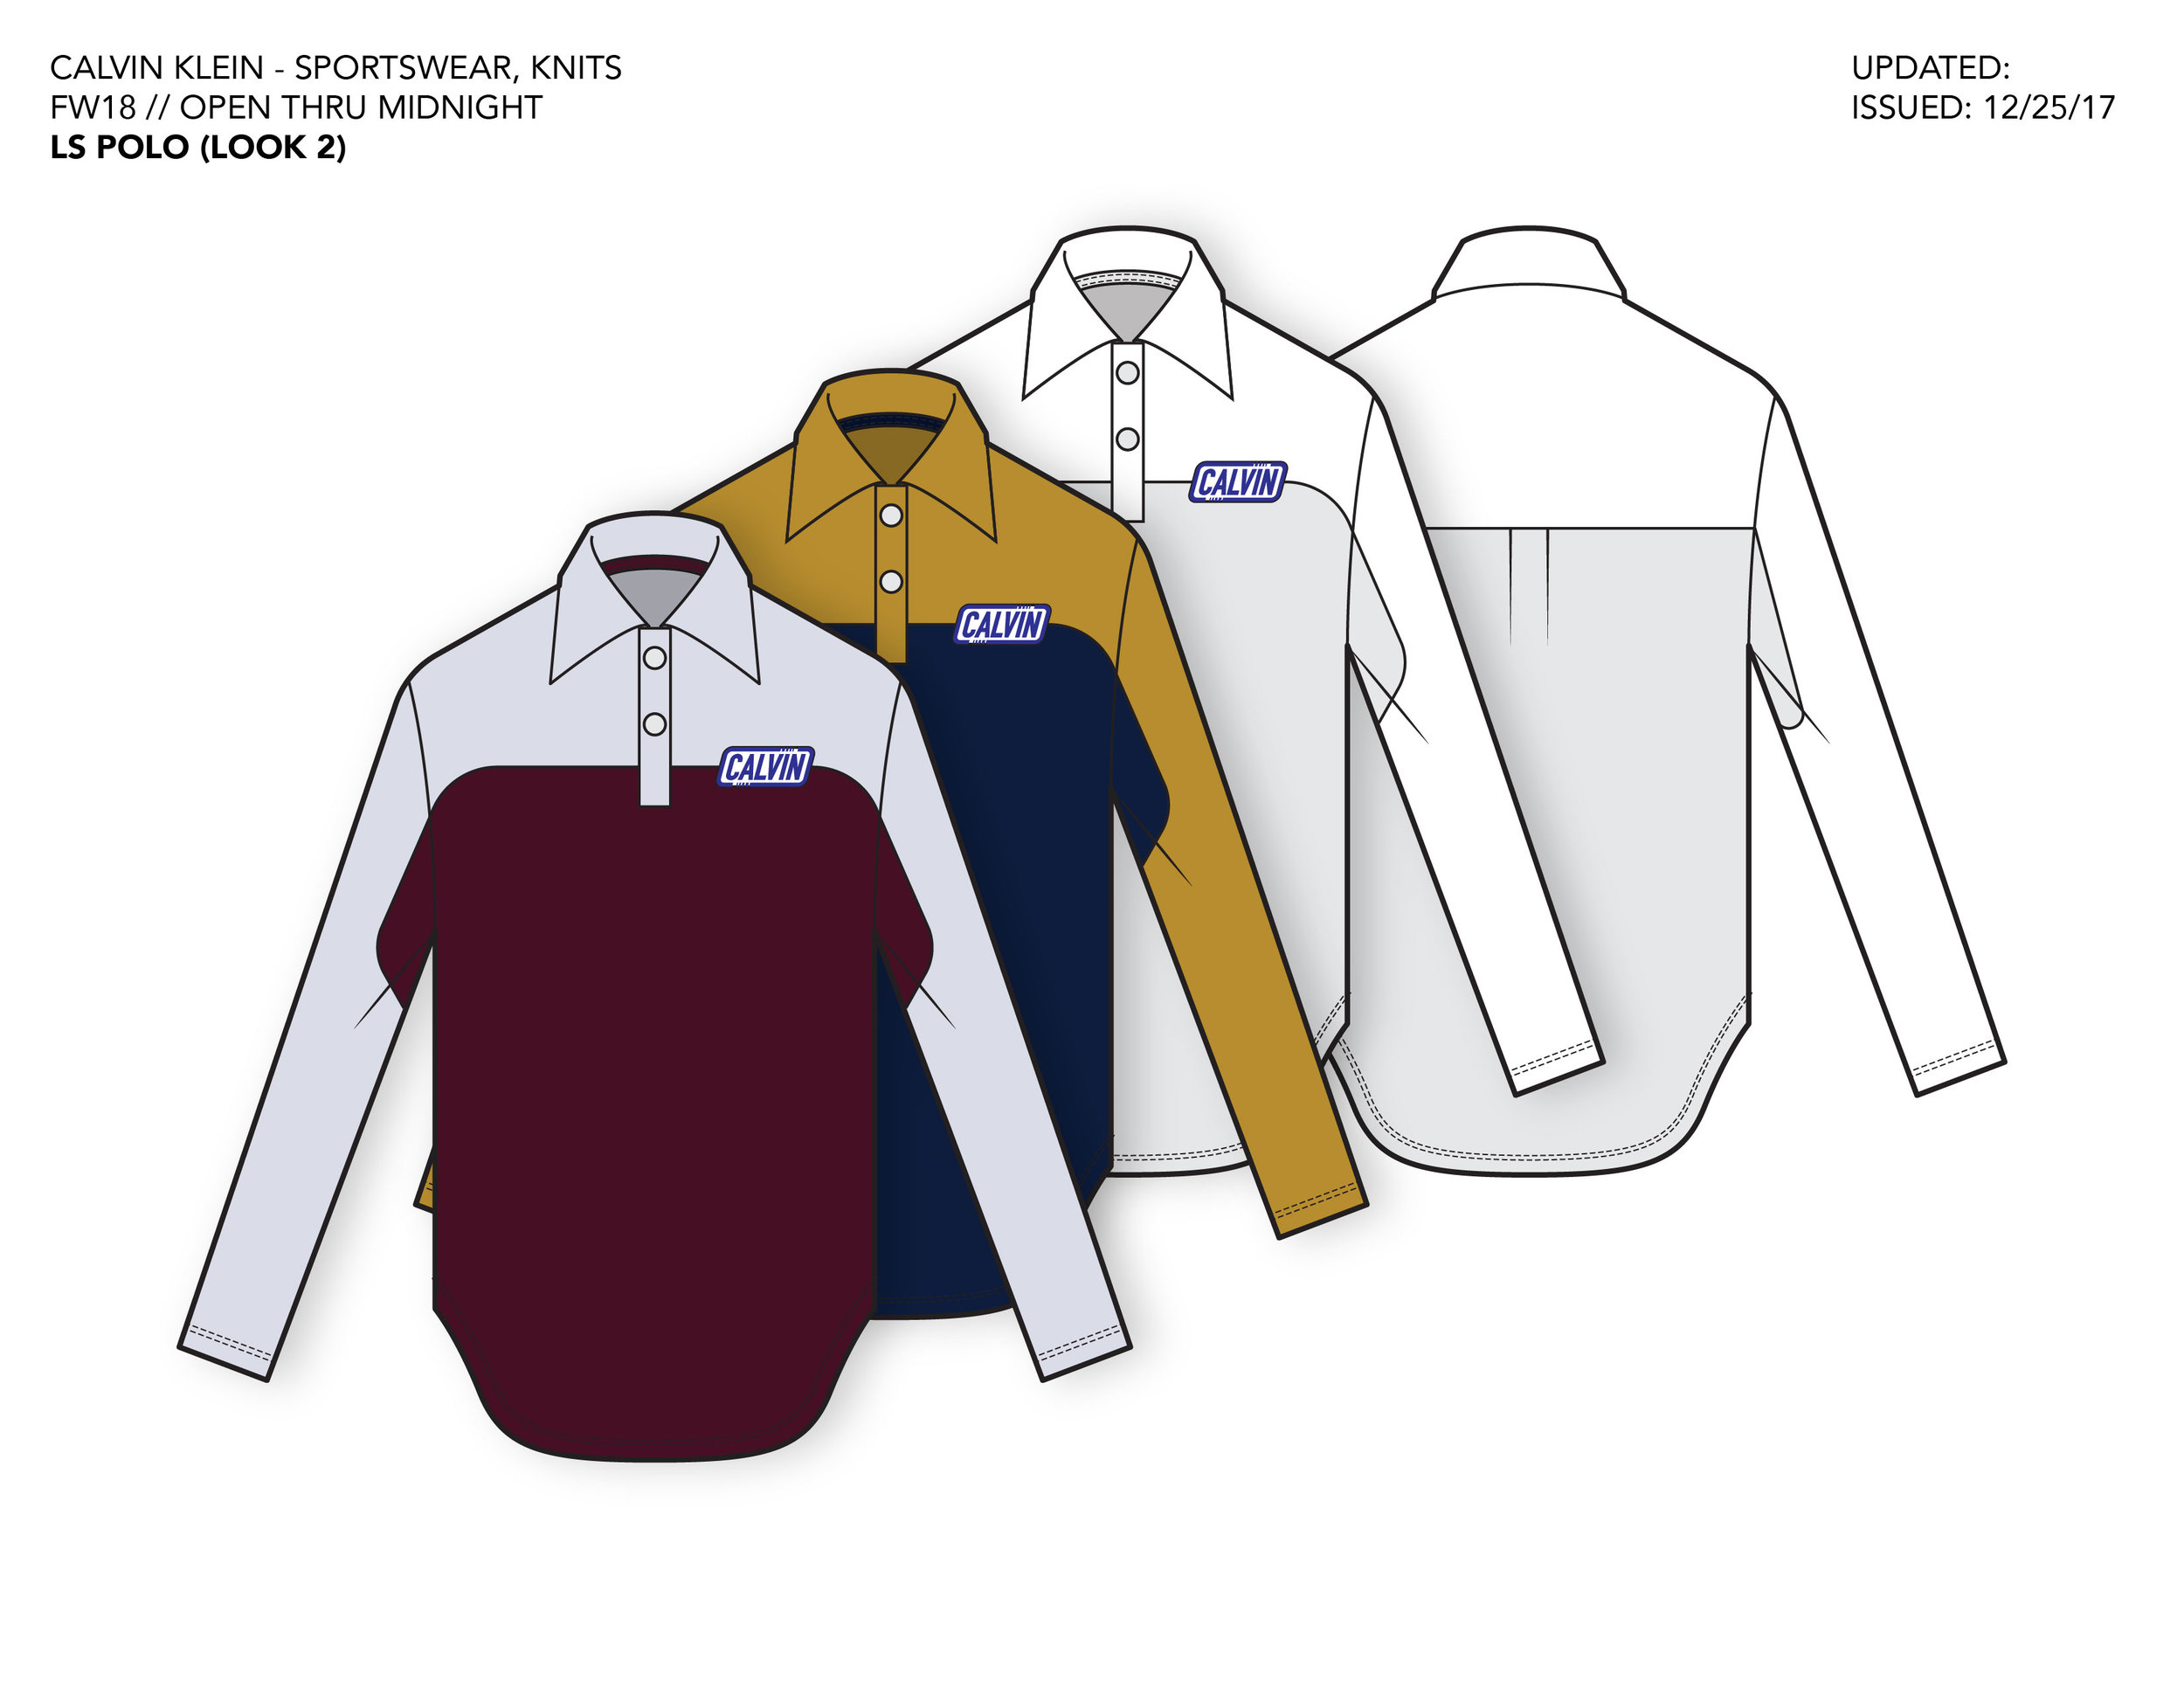 LOOK 2 - LS POLO CAD.jpg